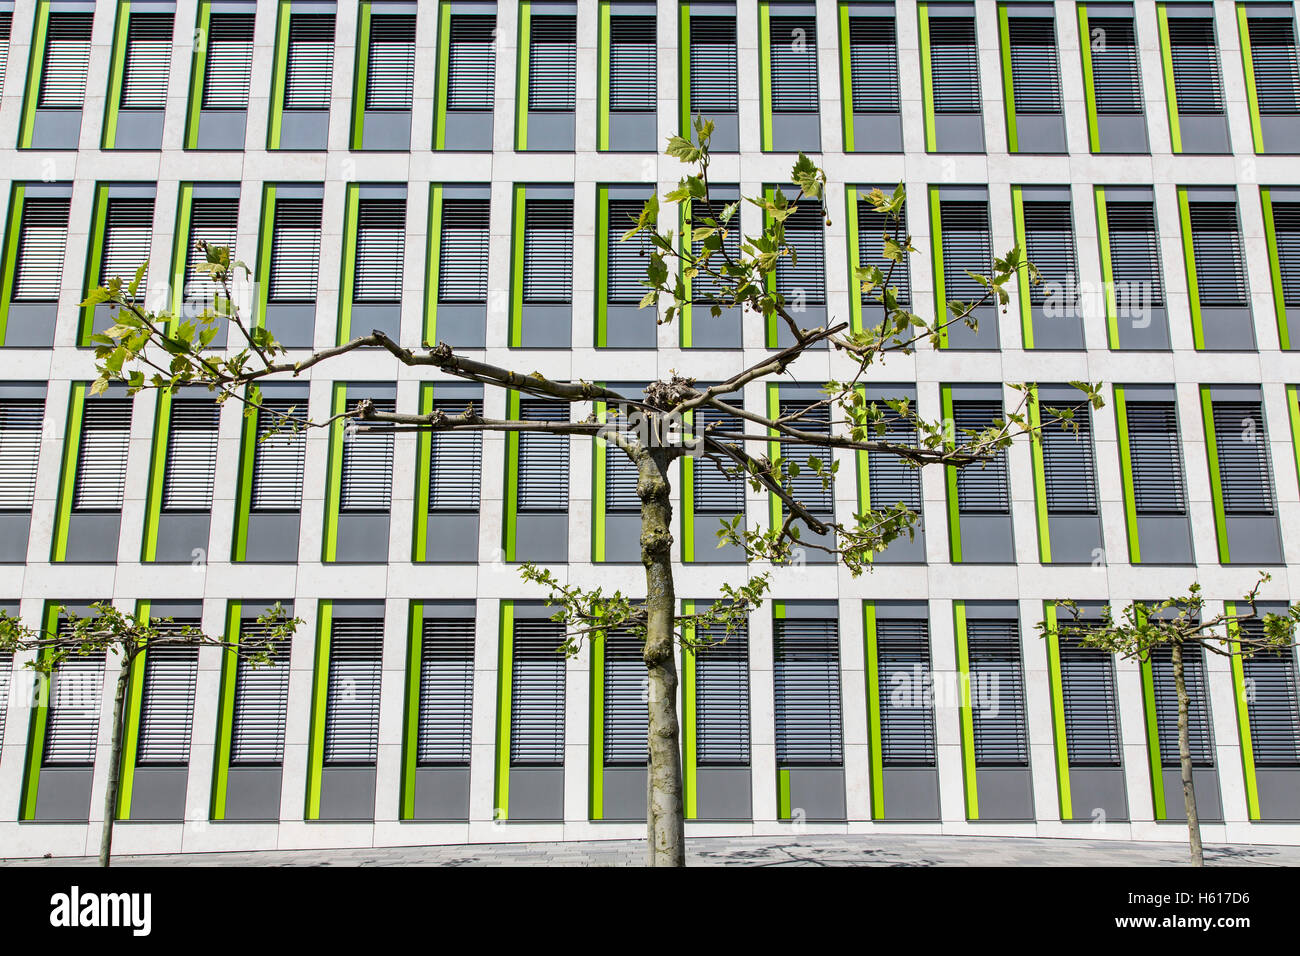 facade of a modern office building, small windows, small tree in front, - Stock Image